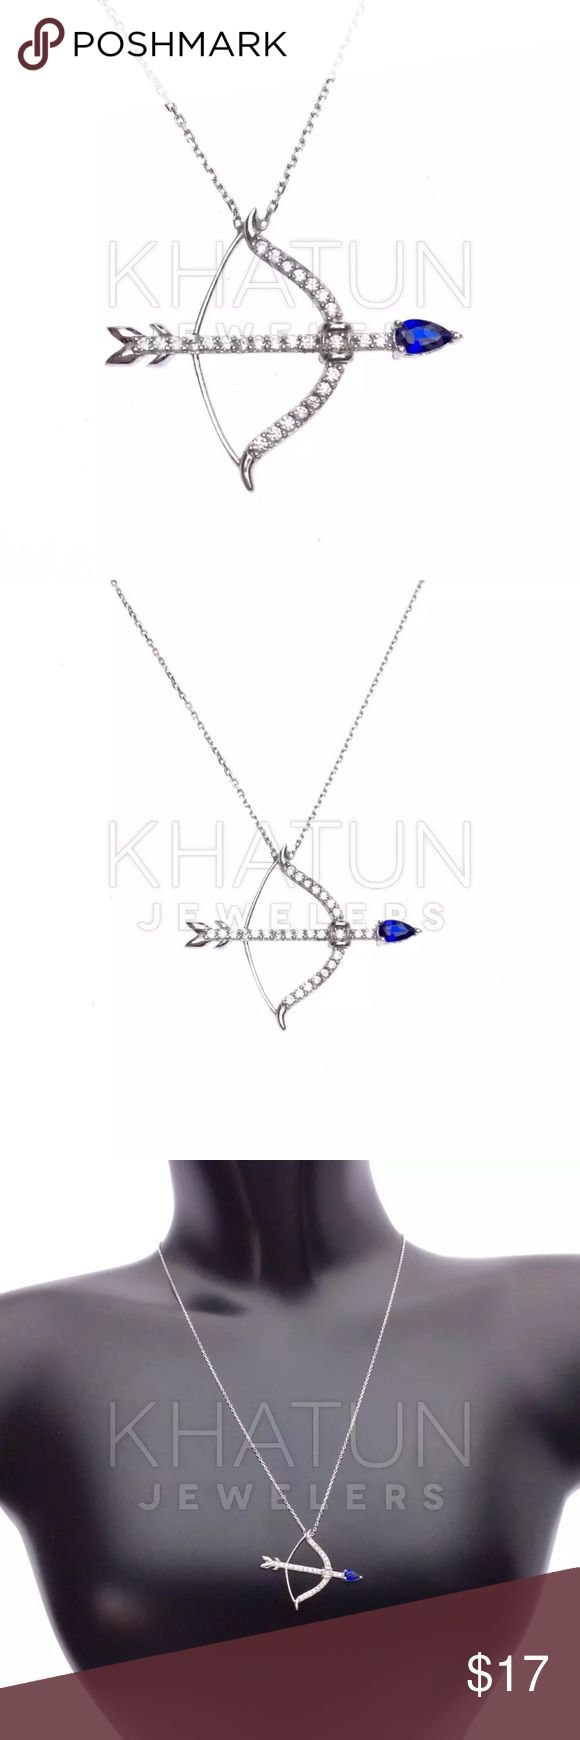 925sterling silver Crossbow Symbol cubic zirconia Description:    Jewelry Type: Necklace   Specifically for: Women   Metal Finish: High Polish   Metal Type: 925 Sterling Silver   Center Gem Type: Cubic Zirconia   Center Gem Shape: Round Shape   Accent Gem Color: Blue Accent   Center Gem Cut: Brilliant Cut   Center Gem Color: Clear   Metal Plating: Rhodium Plated   Weight : 2.40 gr (+/- 3%)   Stamped 925 Sterling Silver   made in Turkey    Brand: Grand Bazaar Jewelers Grand Bazaar Jewelers…